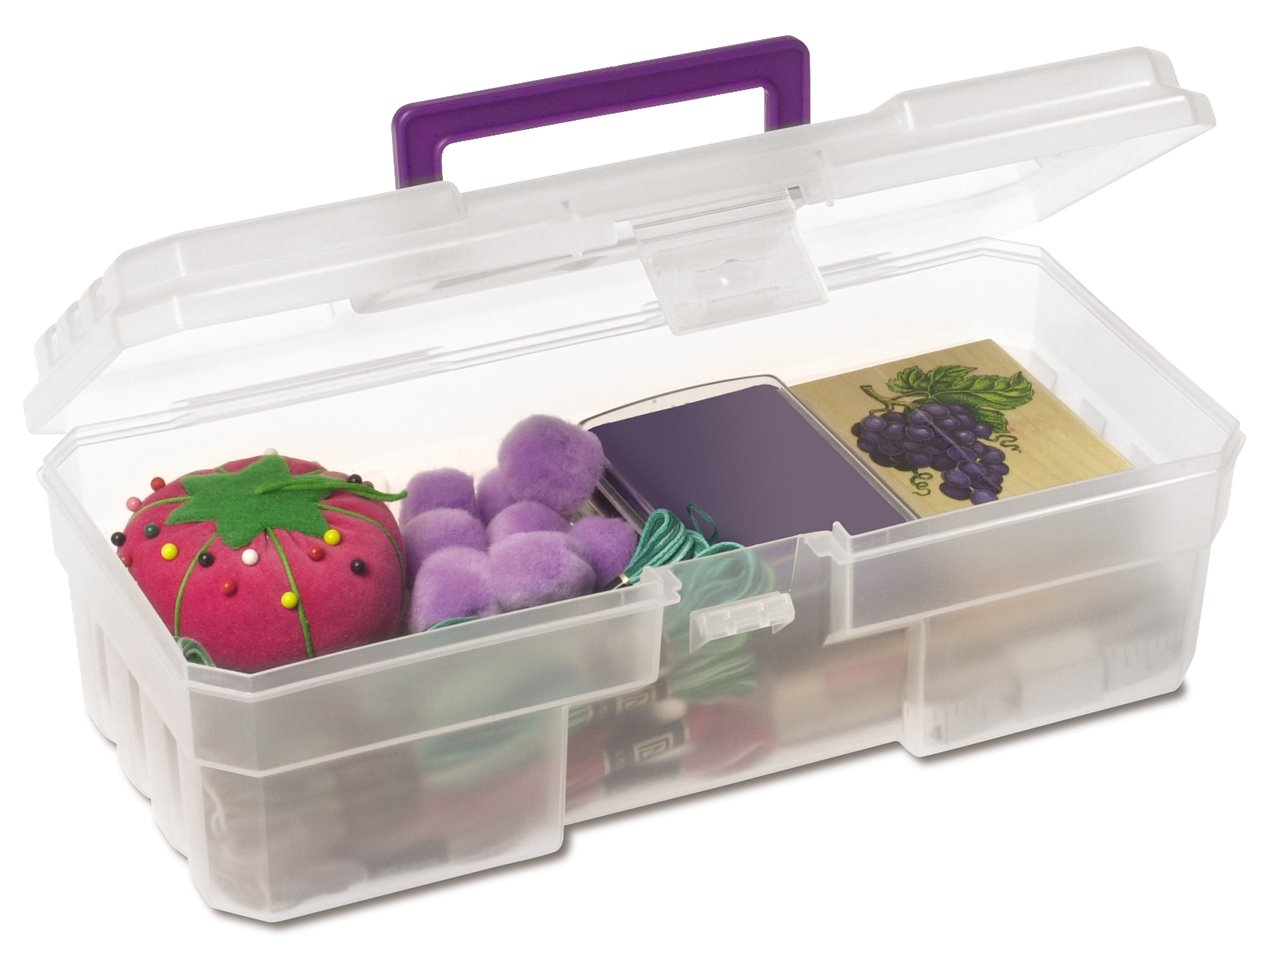 akro mils 09912 clpur 12 inch plastic art supply craft On arts and crafts containers